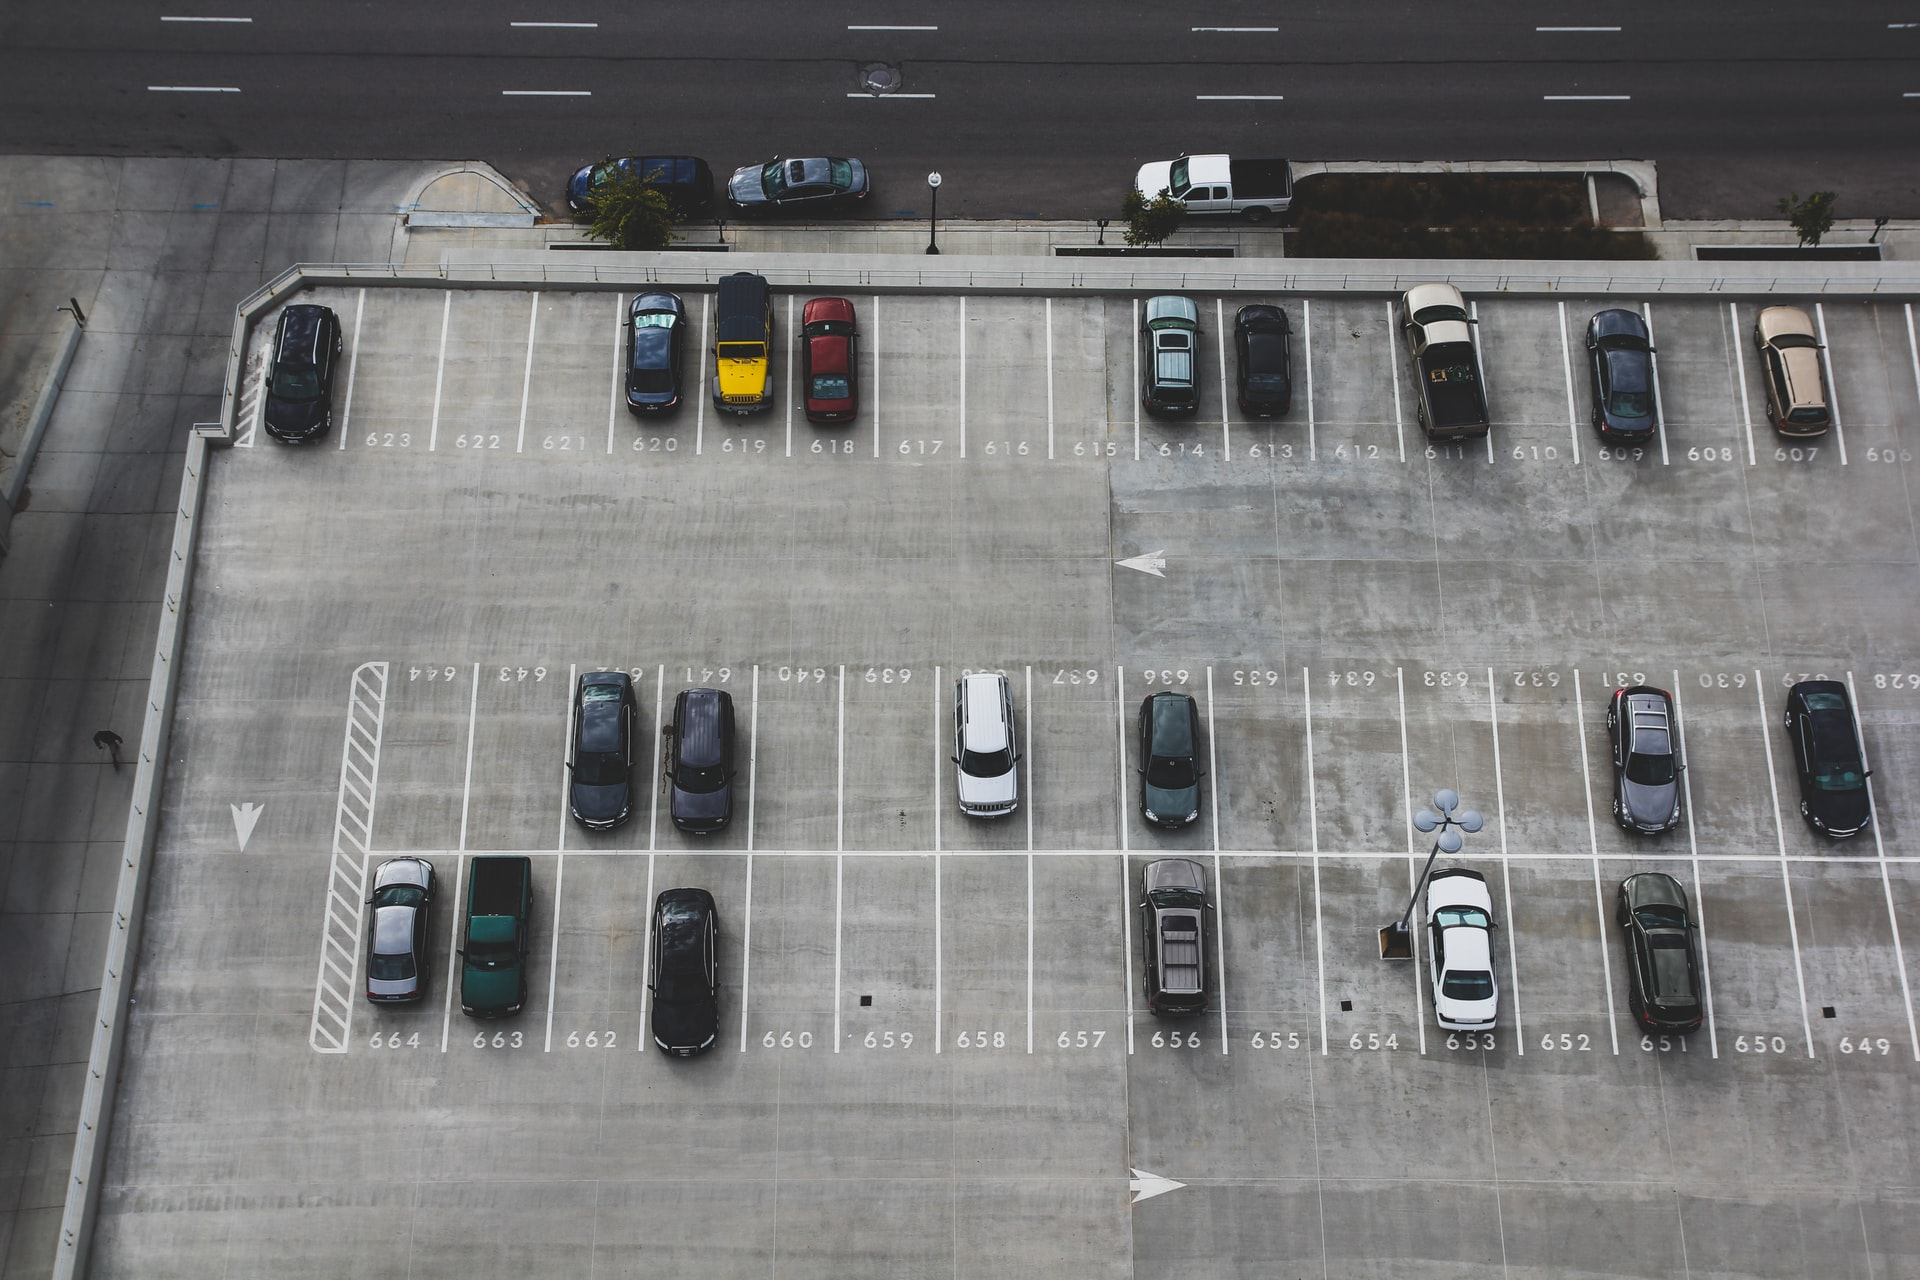 Parking Lot Monitoring and Towing Services St. Louis